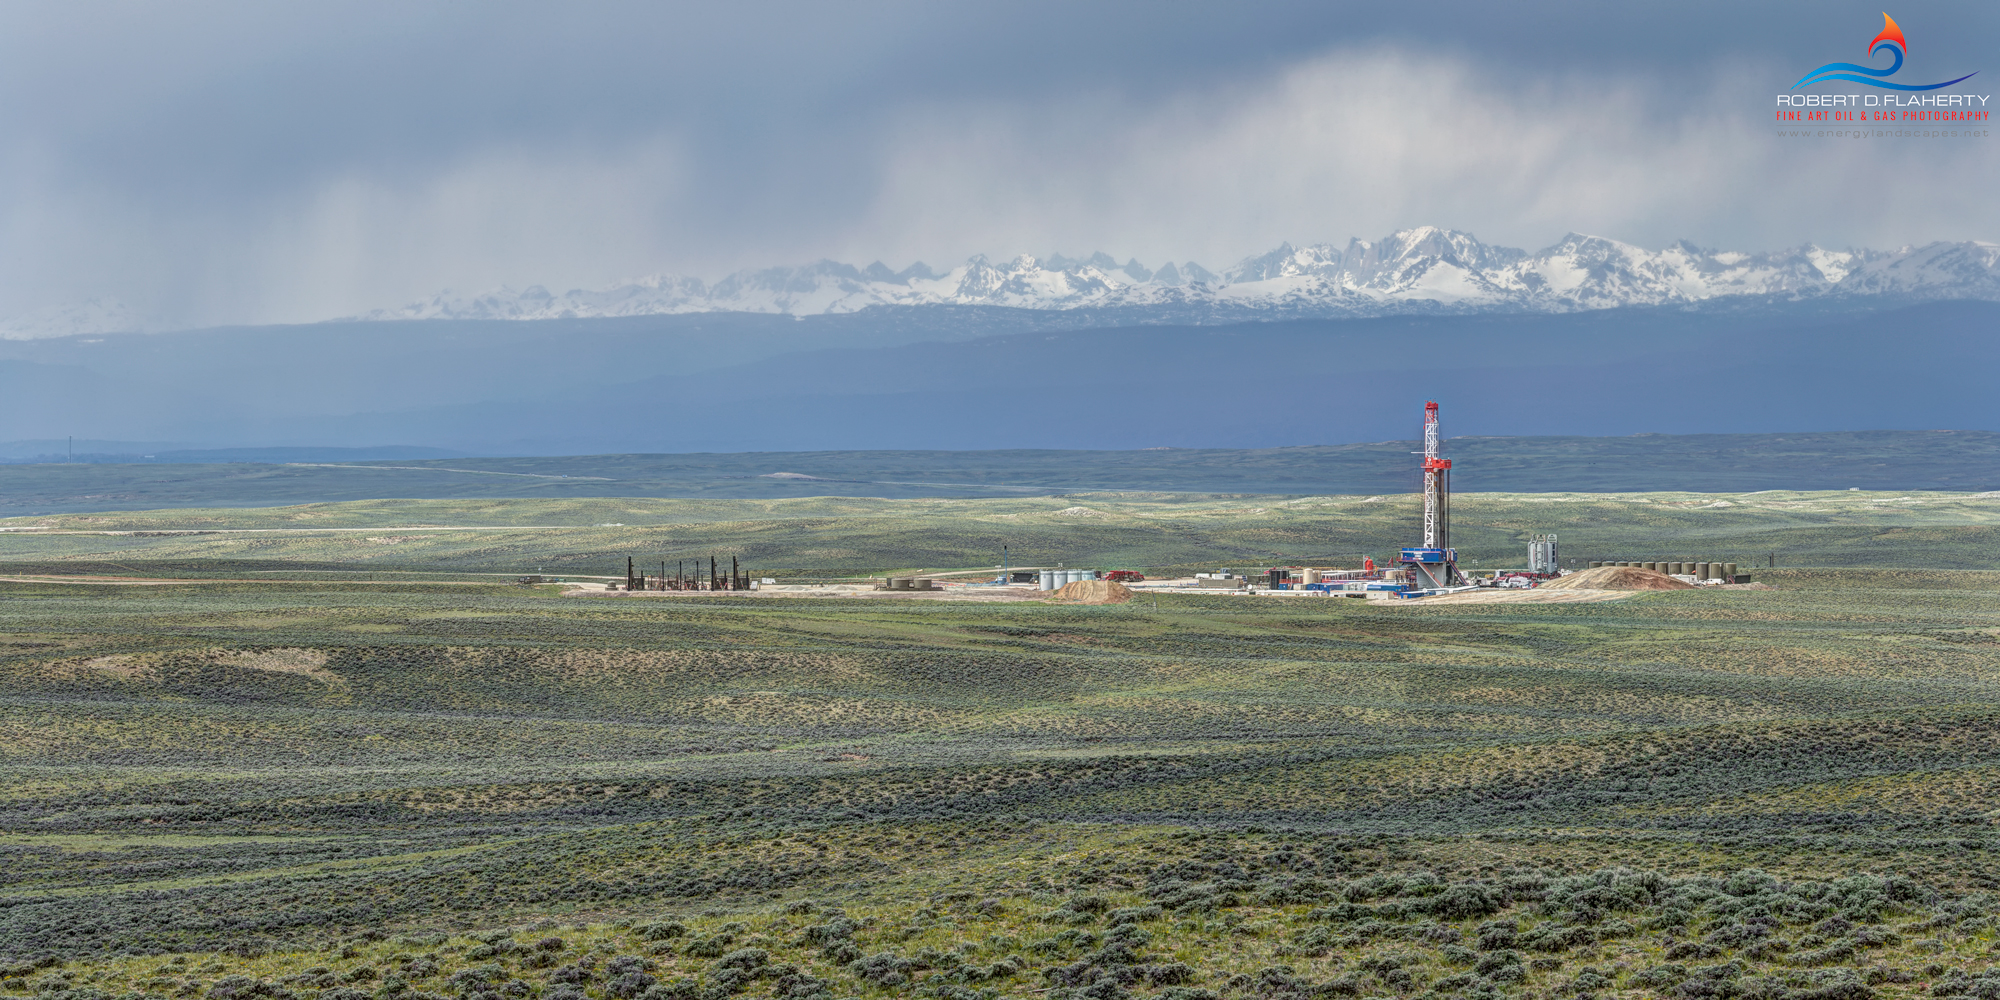 Patterson, Patterson UTI, Patterson Drilling, drilling rig, Wyoming, frac, mural, Oil & Gas Photography, oil & gas photography, oil and gas photography, Spring, Wind River Range, Jona, Jona Field, com, photo